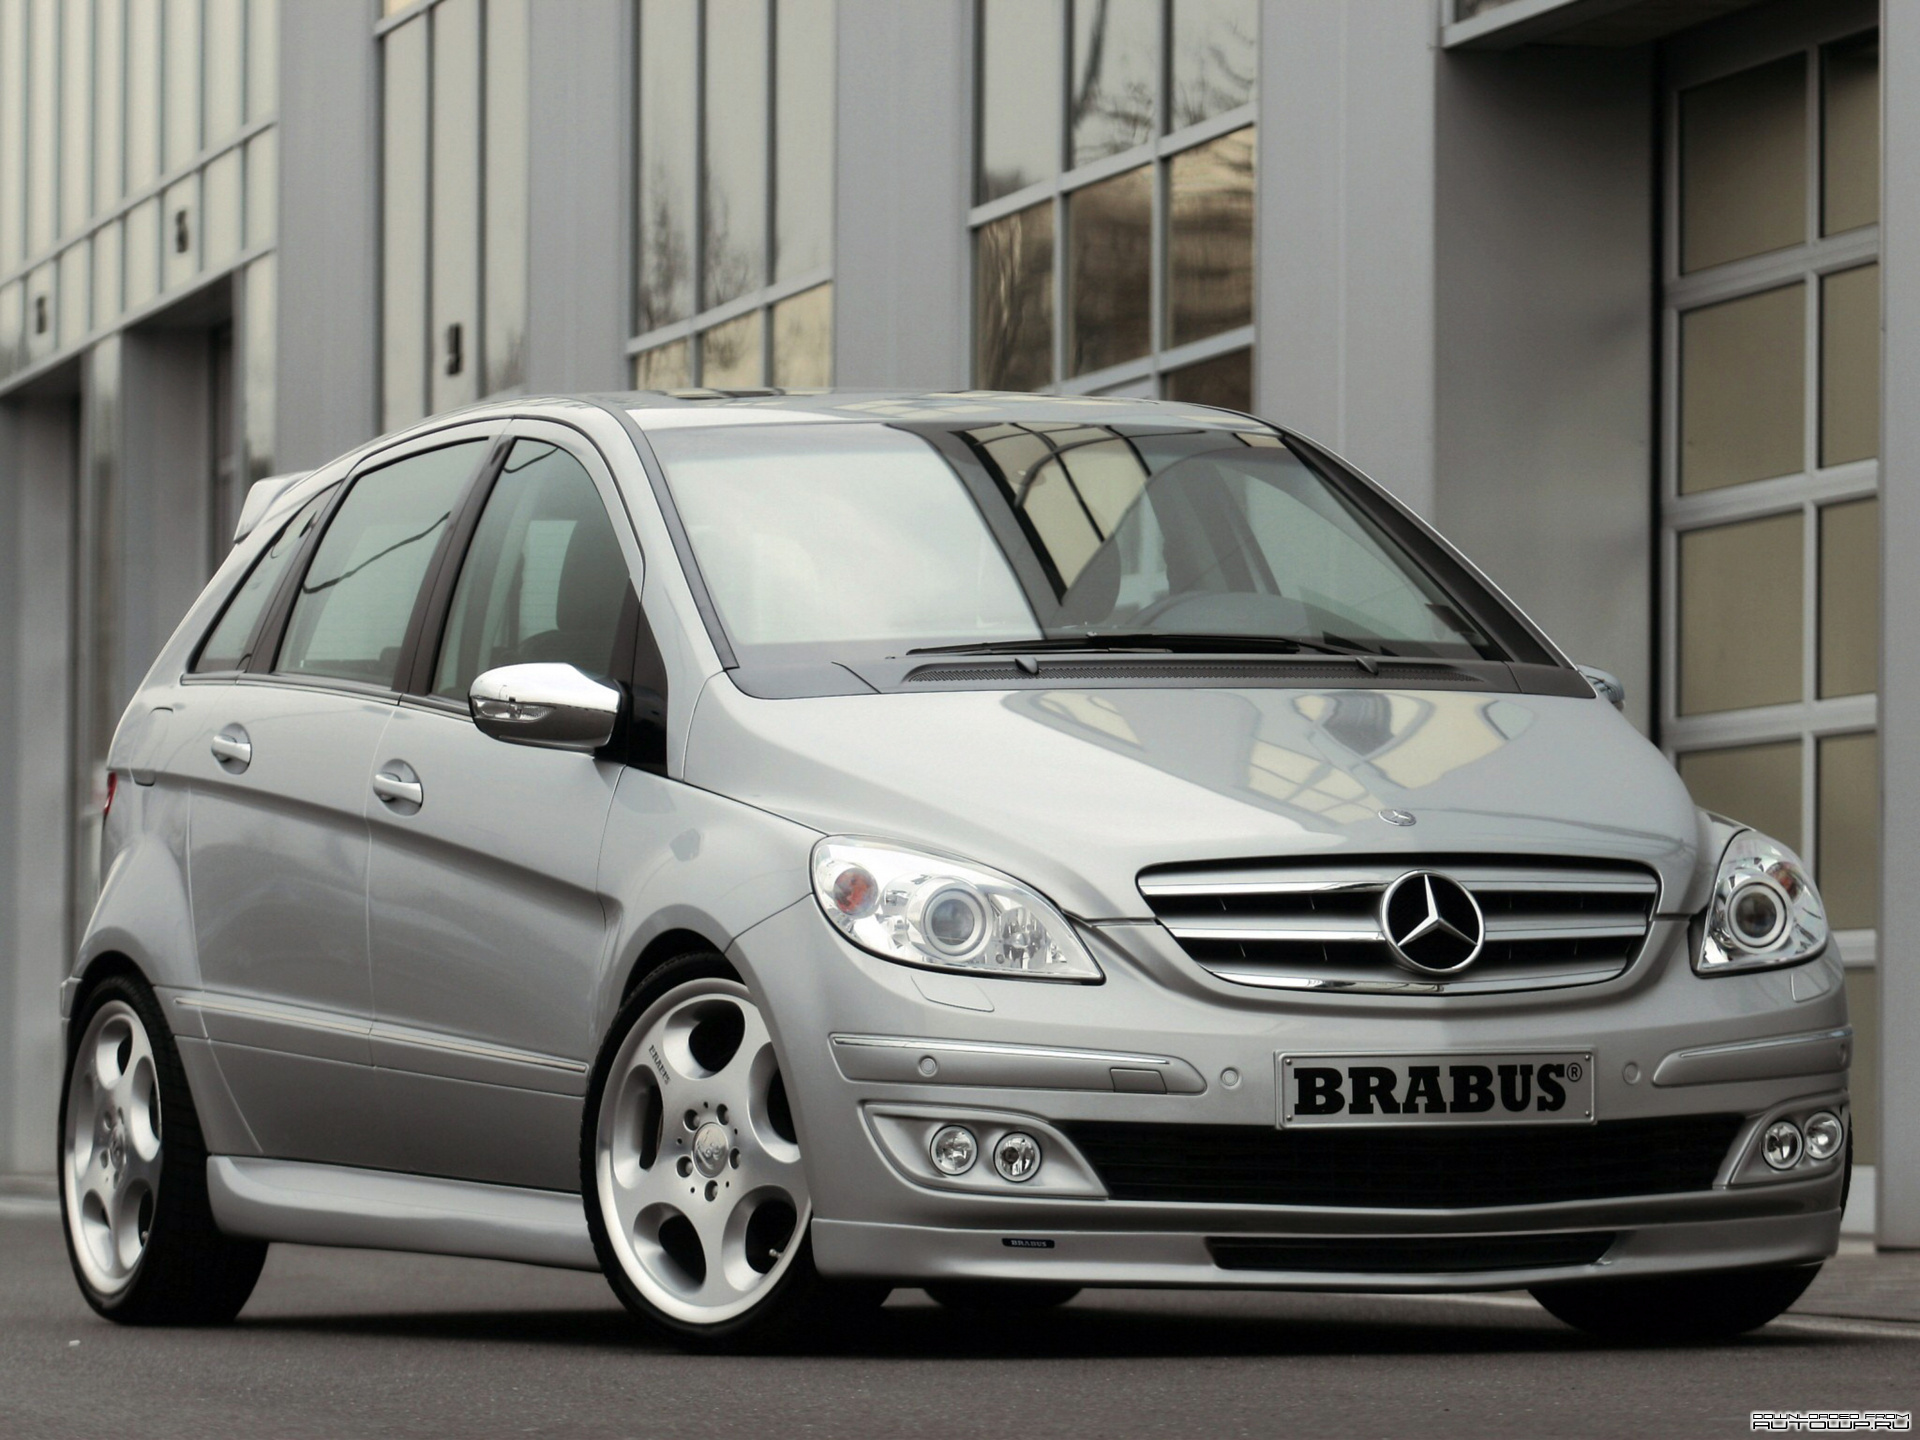 brabus b class w245 photos photogallery with 5 pics. Black Bedroom Furniture Sets. Home Design Ideas